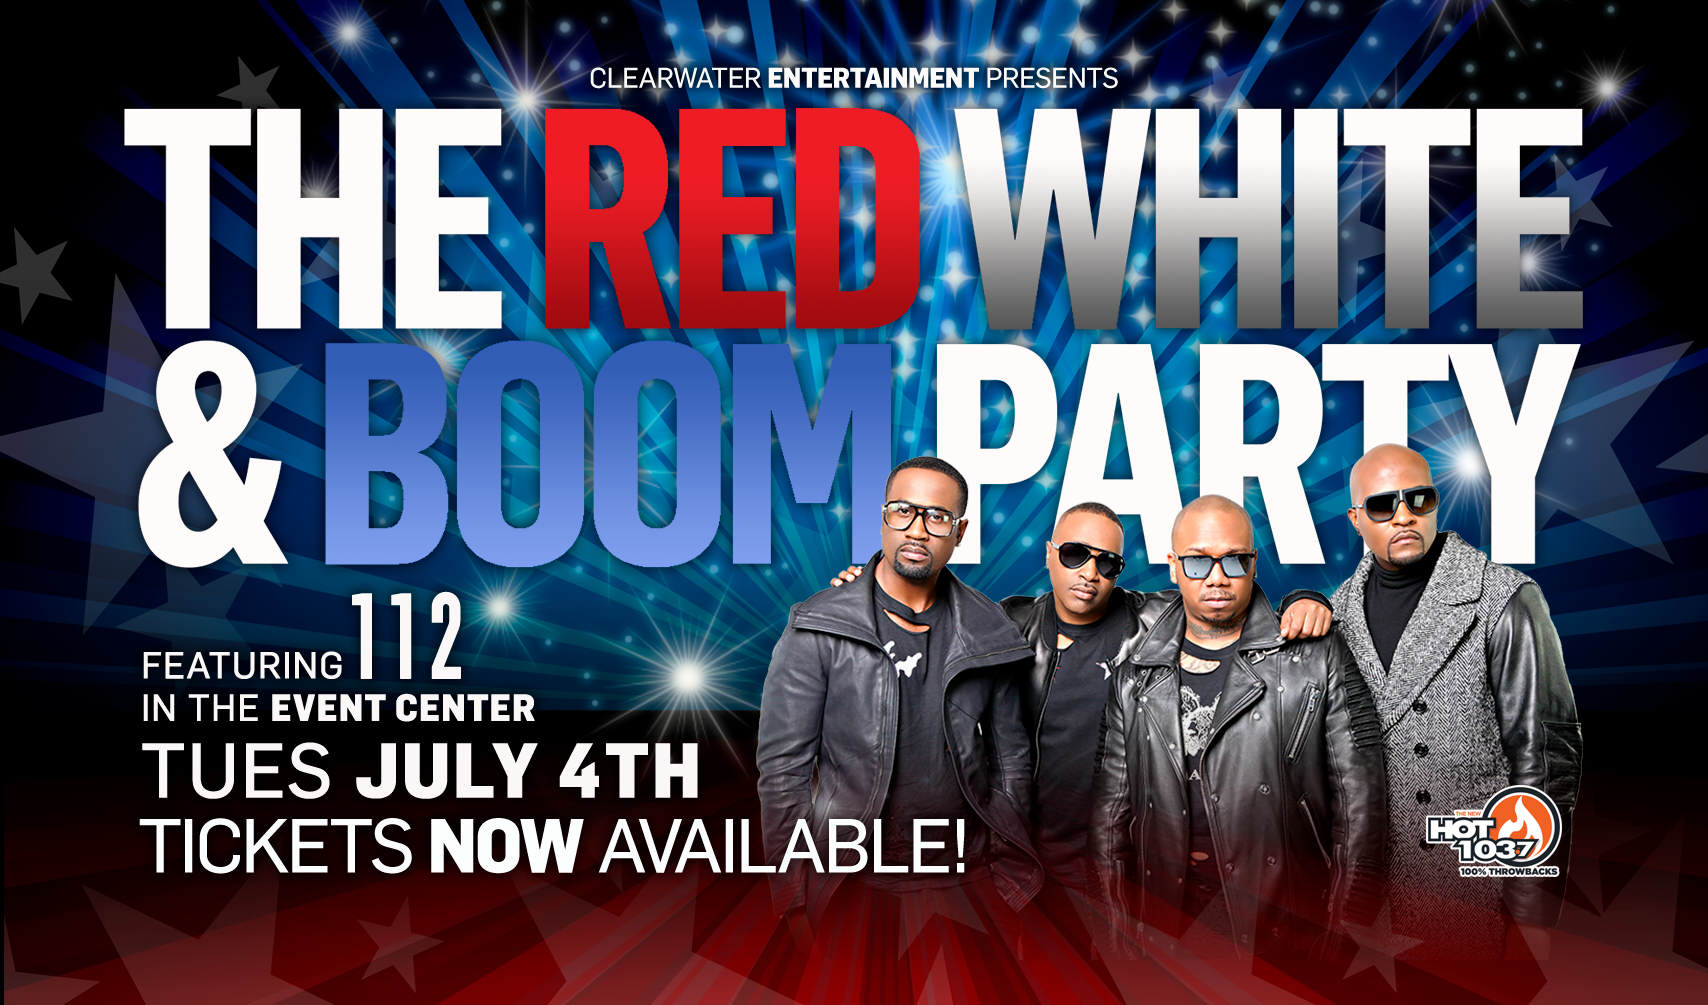 Red, White & Boom - FEATURING 112! Clearwater Casino Resort